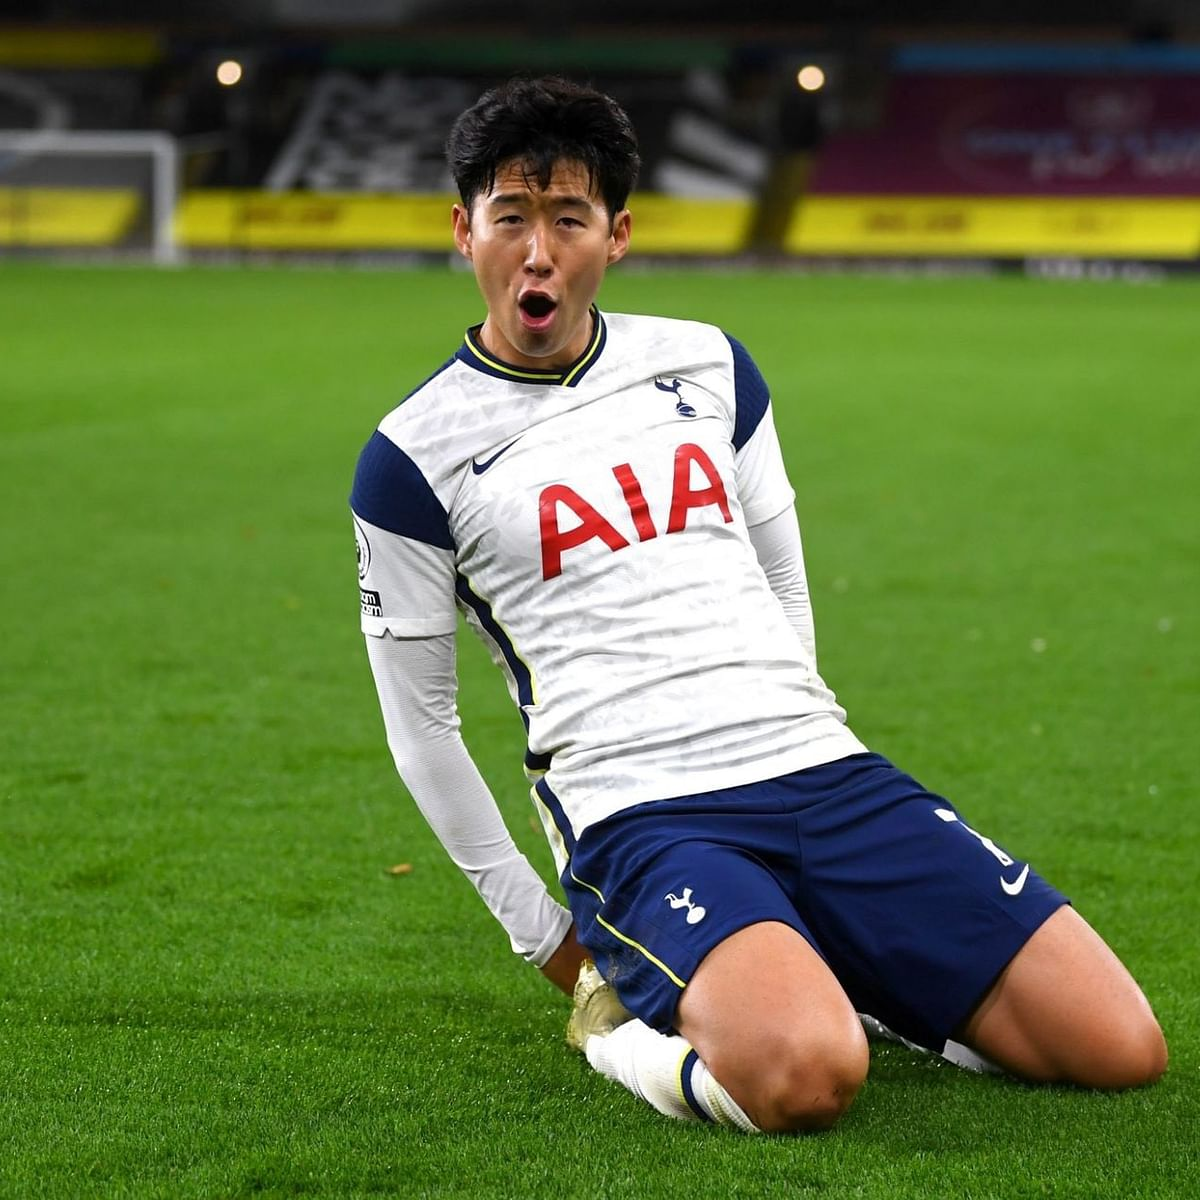 Premier League: Tottenham Hotspur's Heung-Min Son named Player of the Month for October